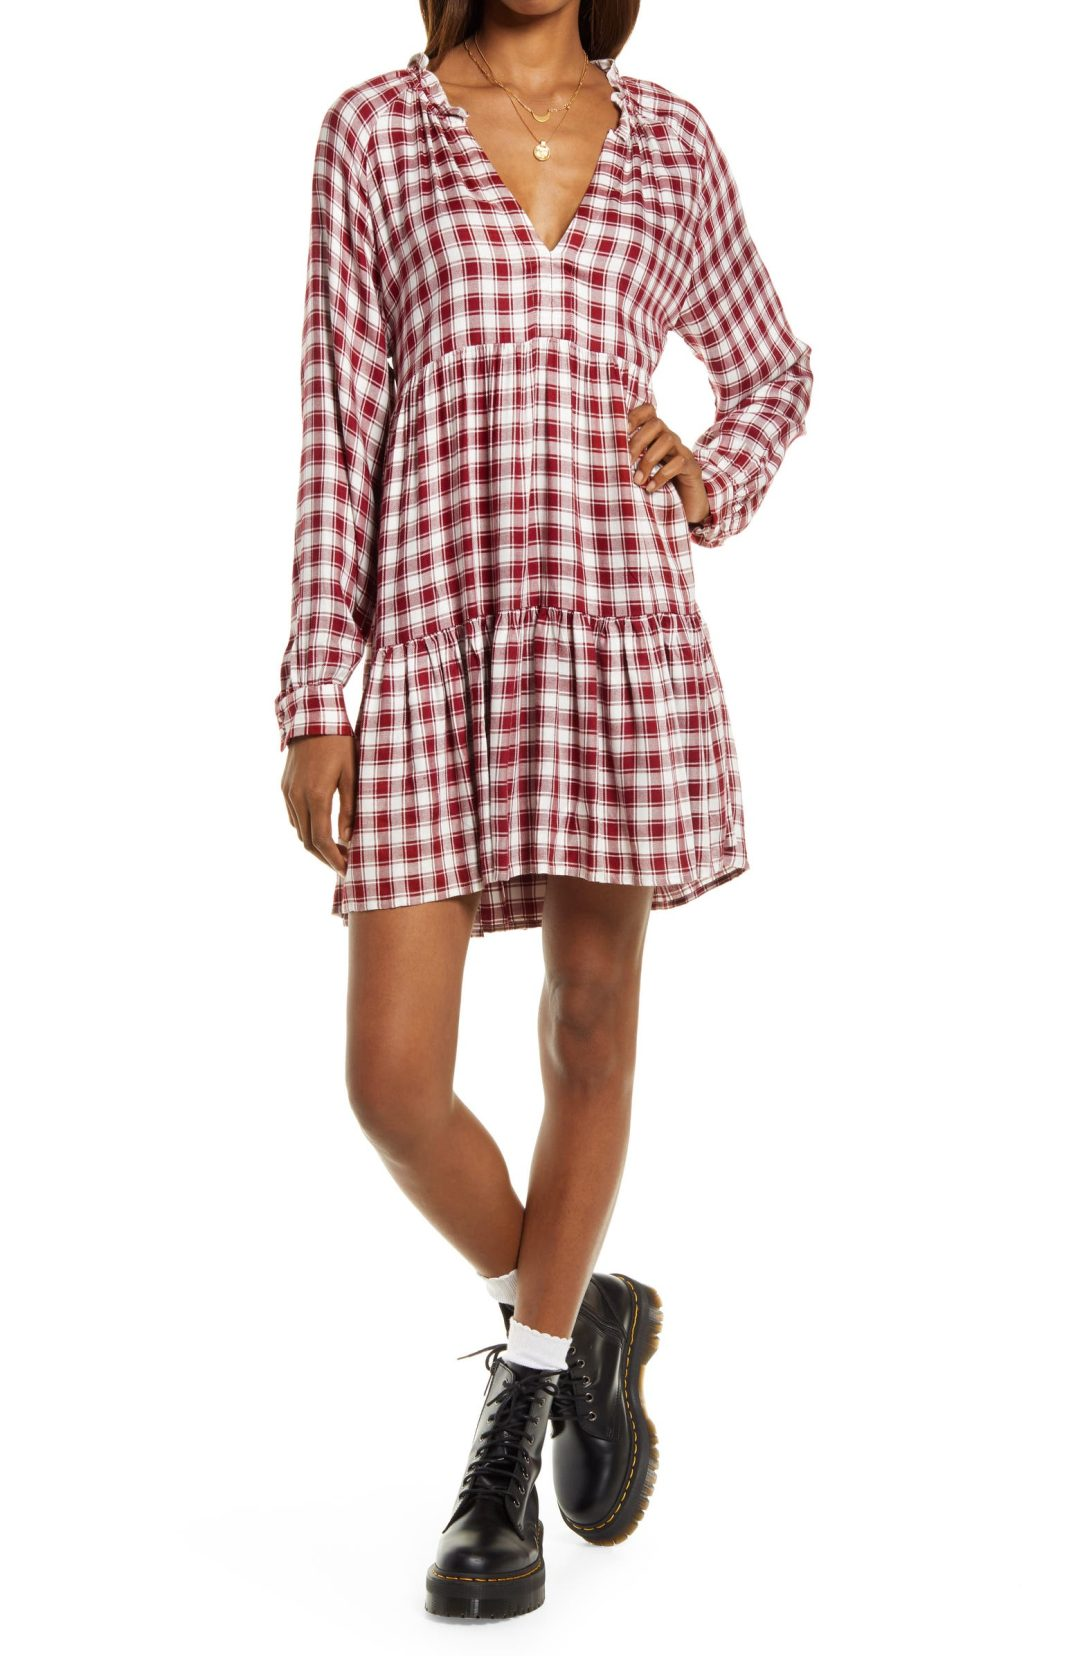 Red gingham dress for cowboy boots